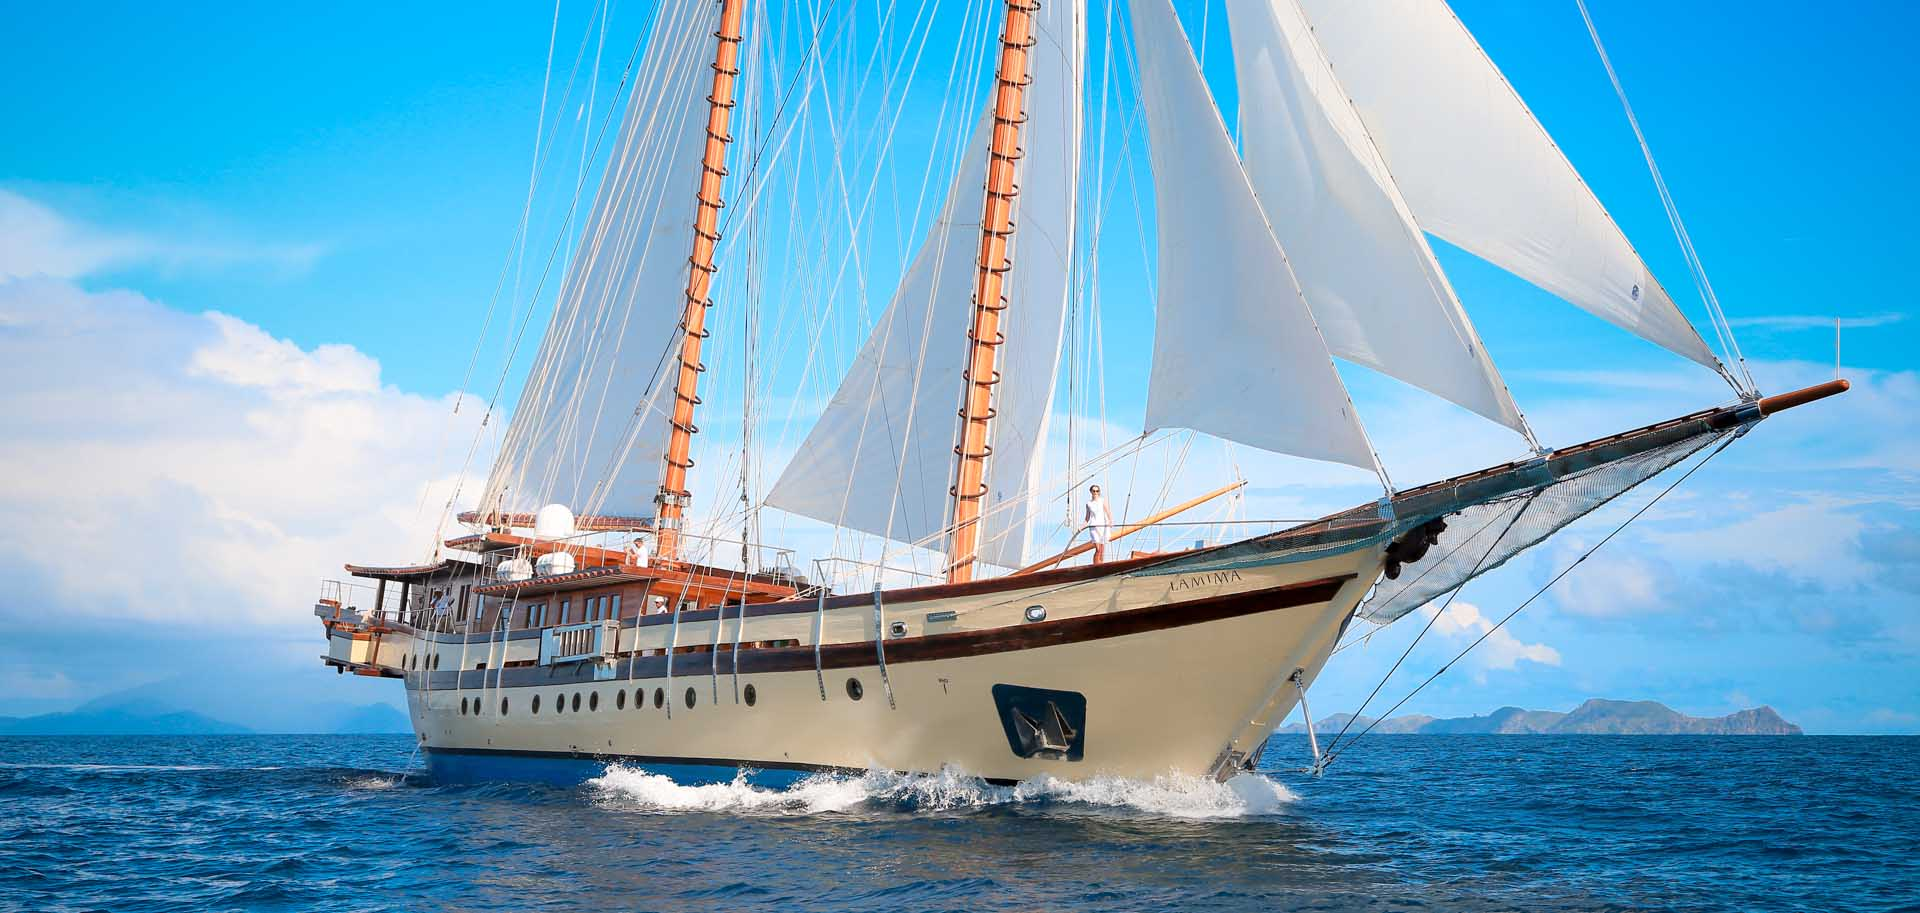 Lamima superyacht for charter with her sails up, cruising through the the blue waters of Indonesia